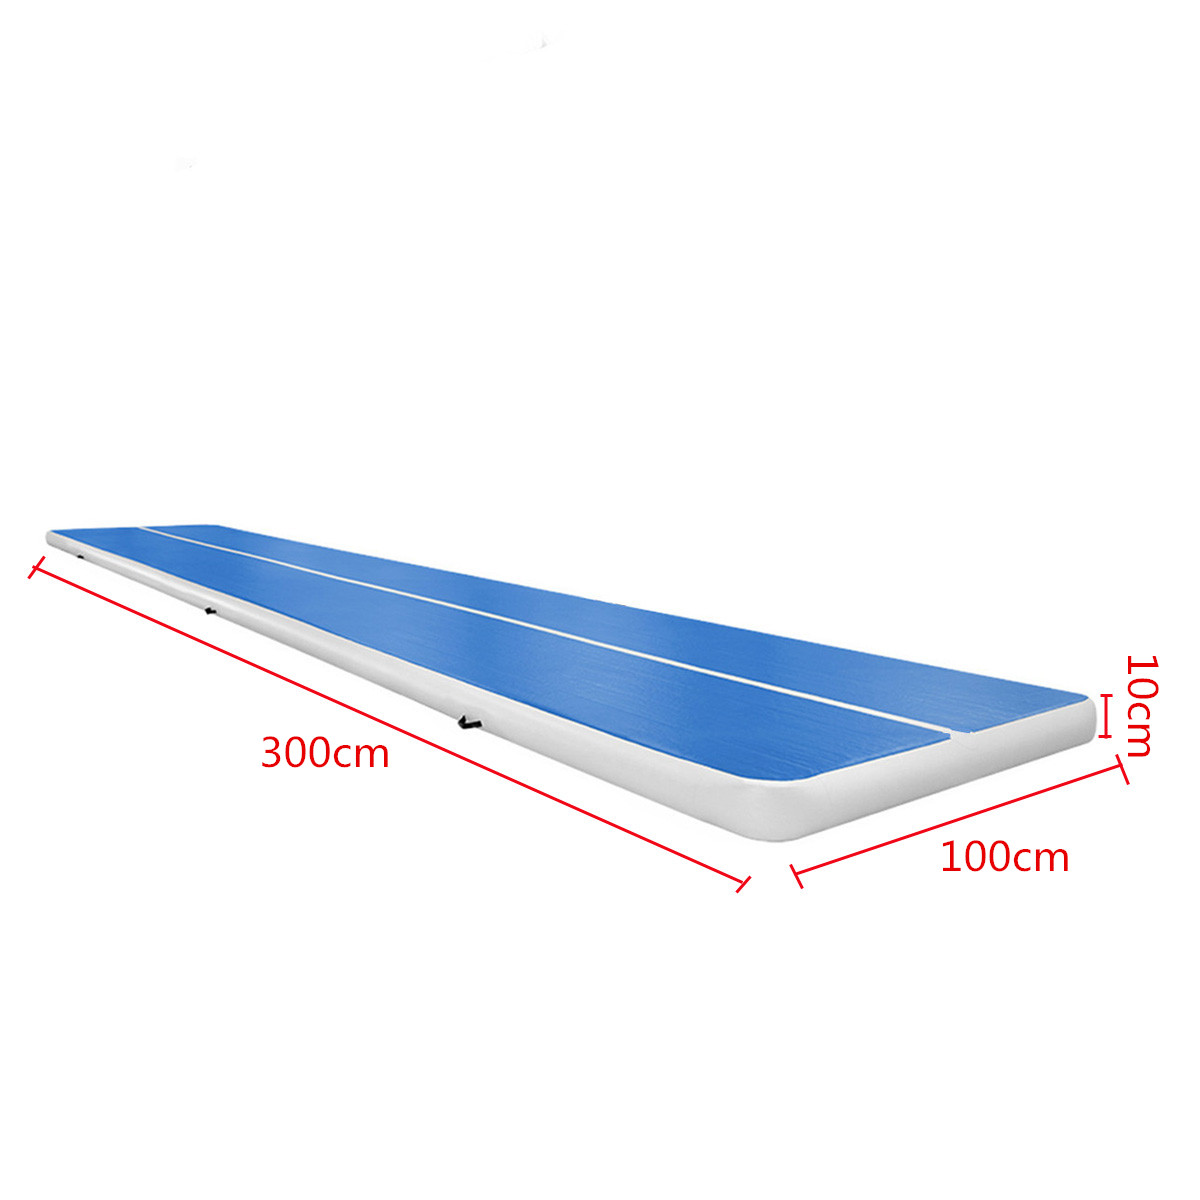 118x39.4x3.94inch Inflatable GYM Air Track Mat Airtrack Gymnastics Mat for Sports Tumbling Traning